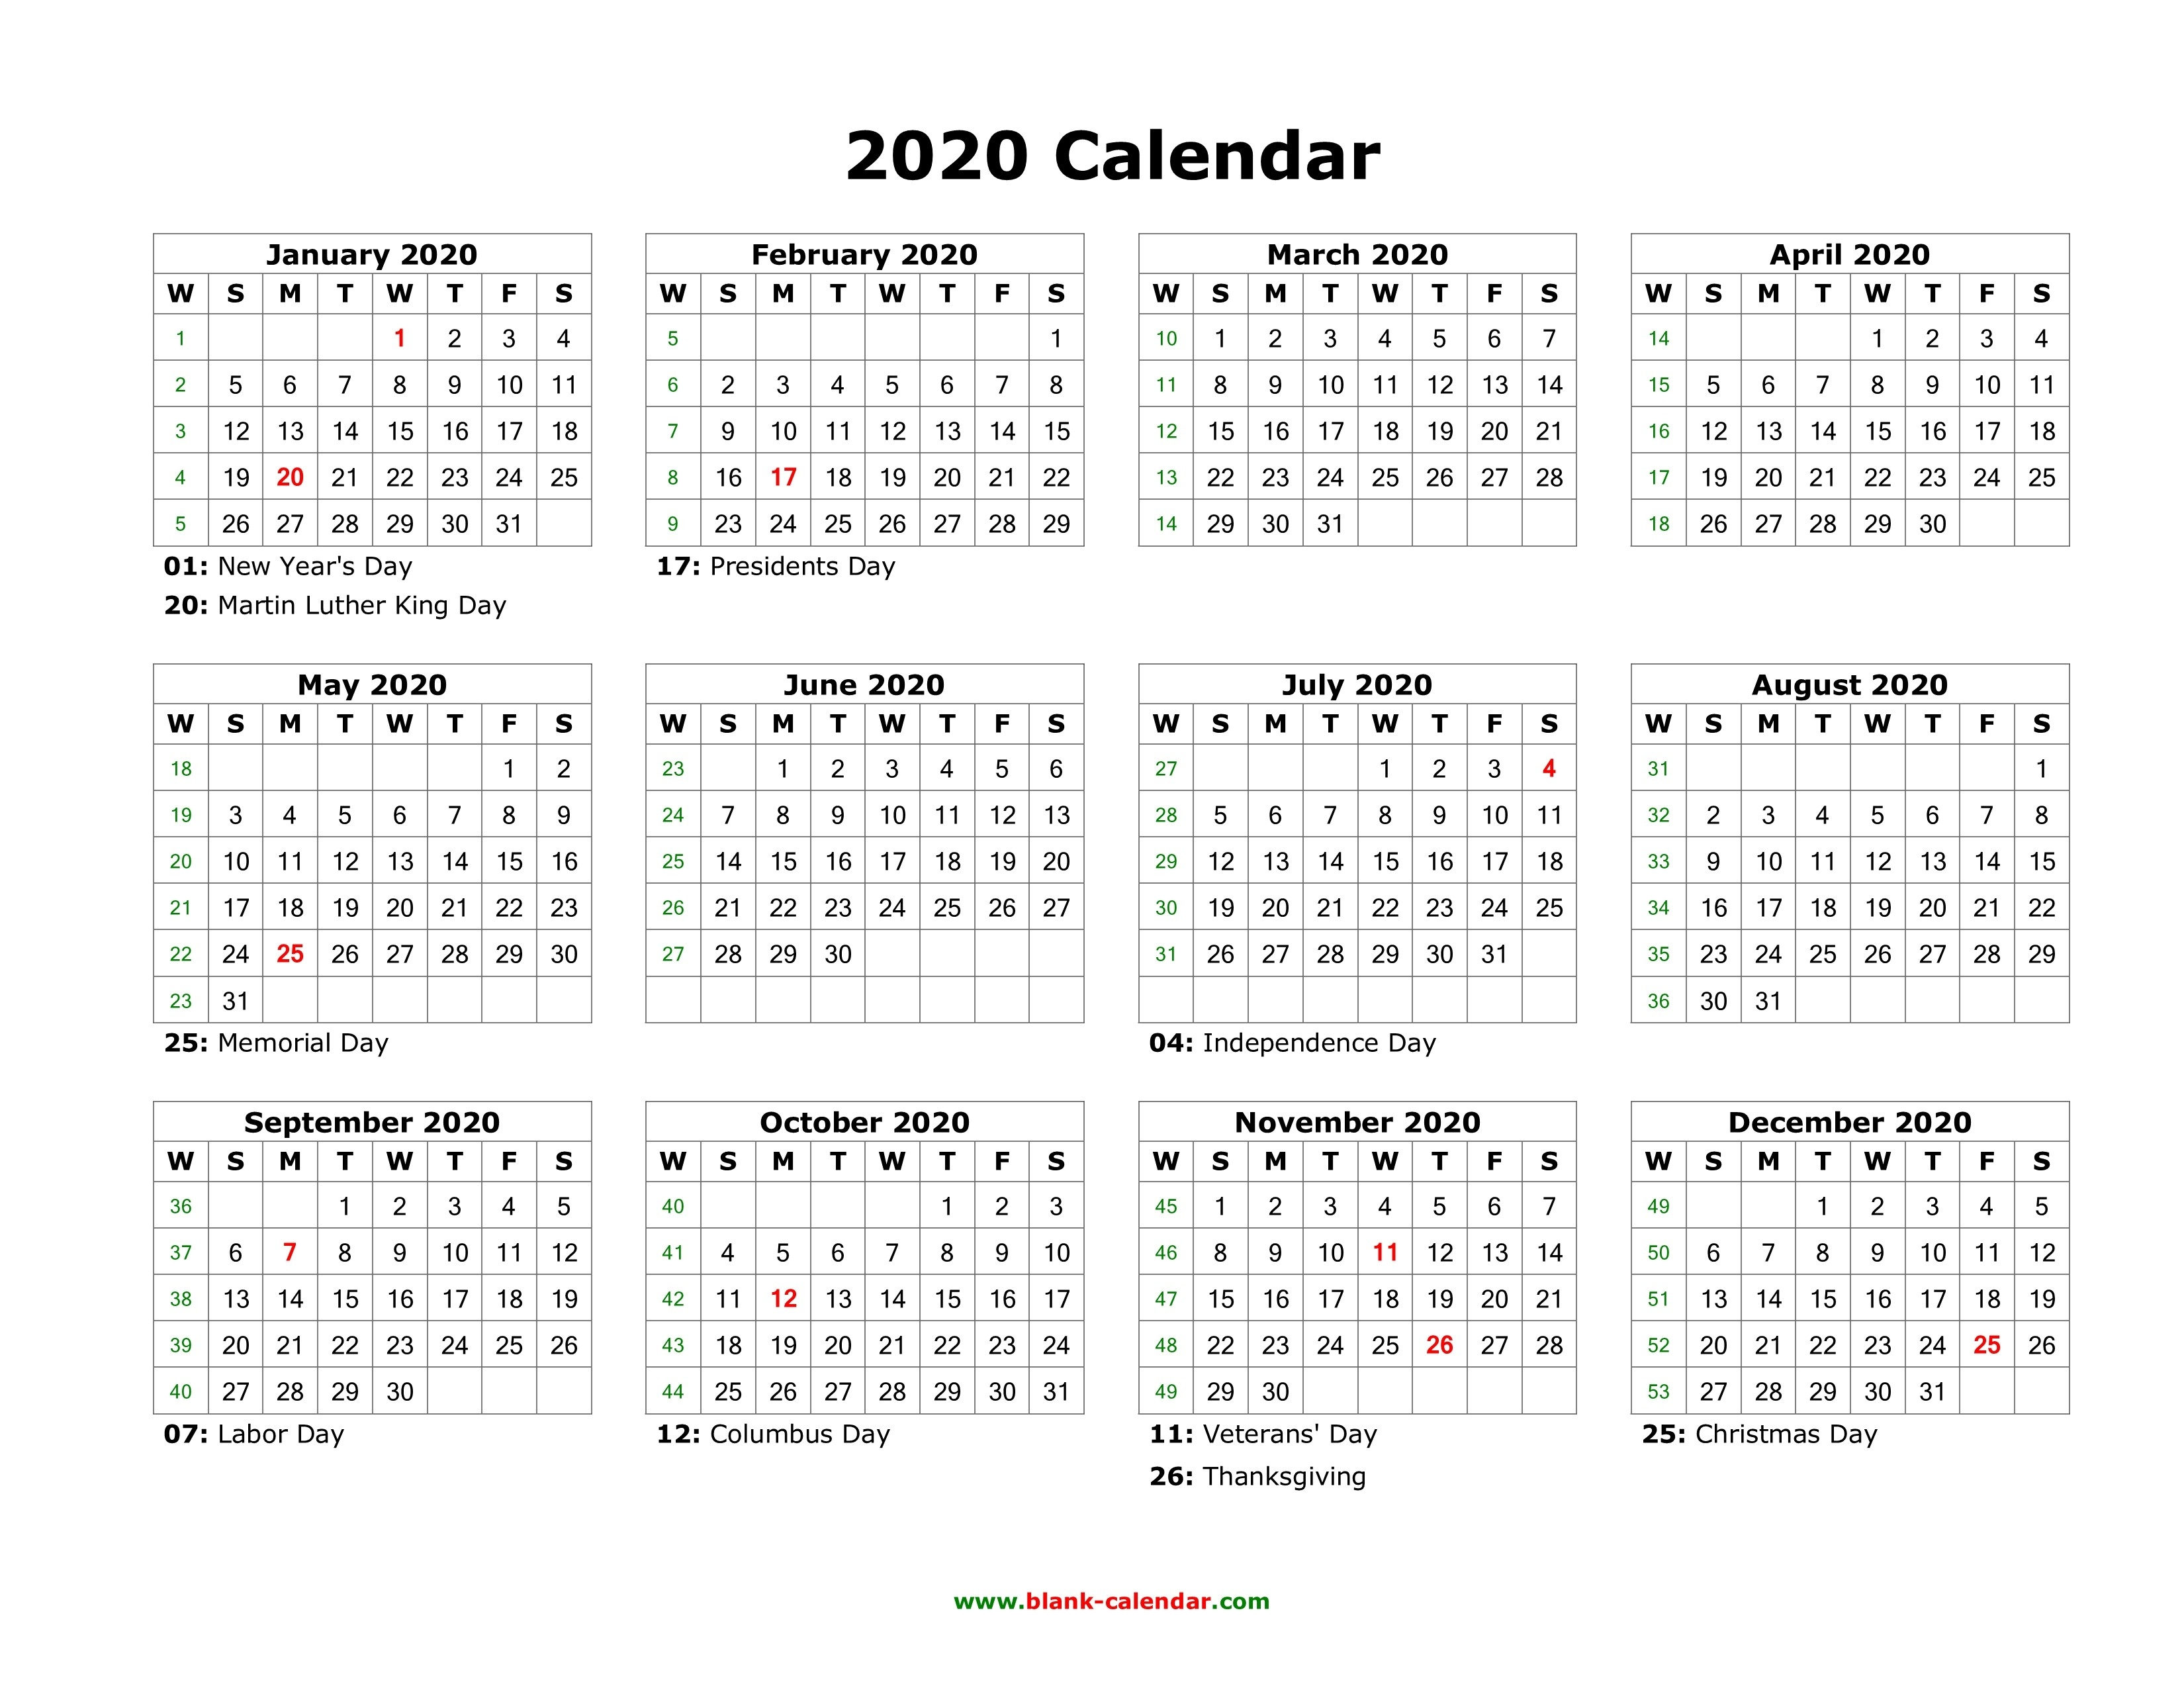 Download Blank Calendar 2020 With Us Holidays (12 Months On-Blank Printable Calandes With 2 Months On A Page Year 2020